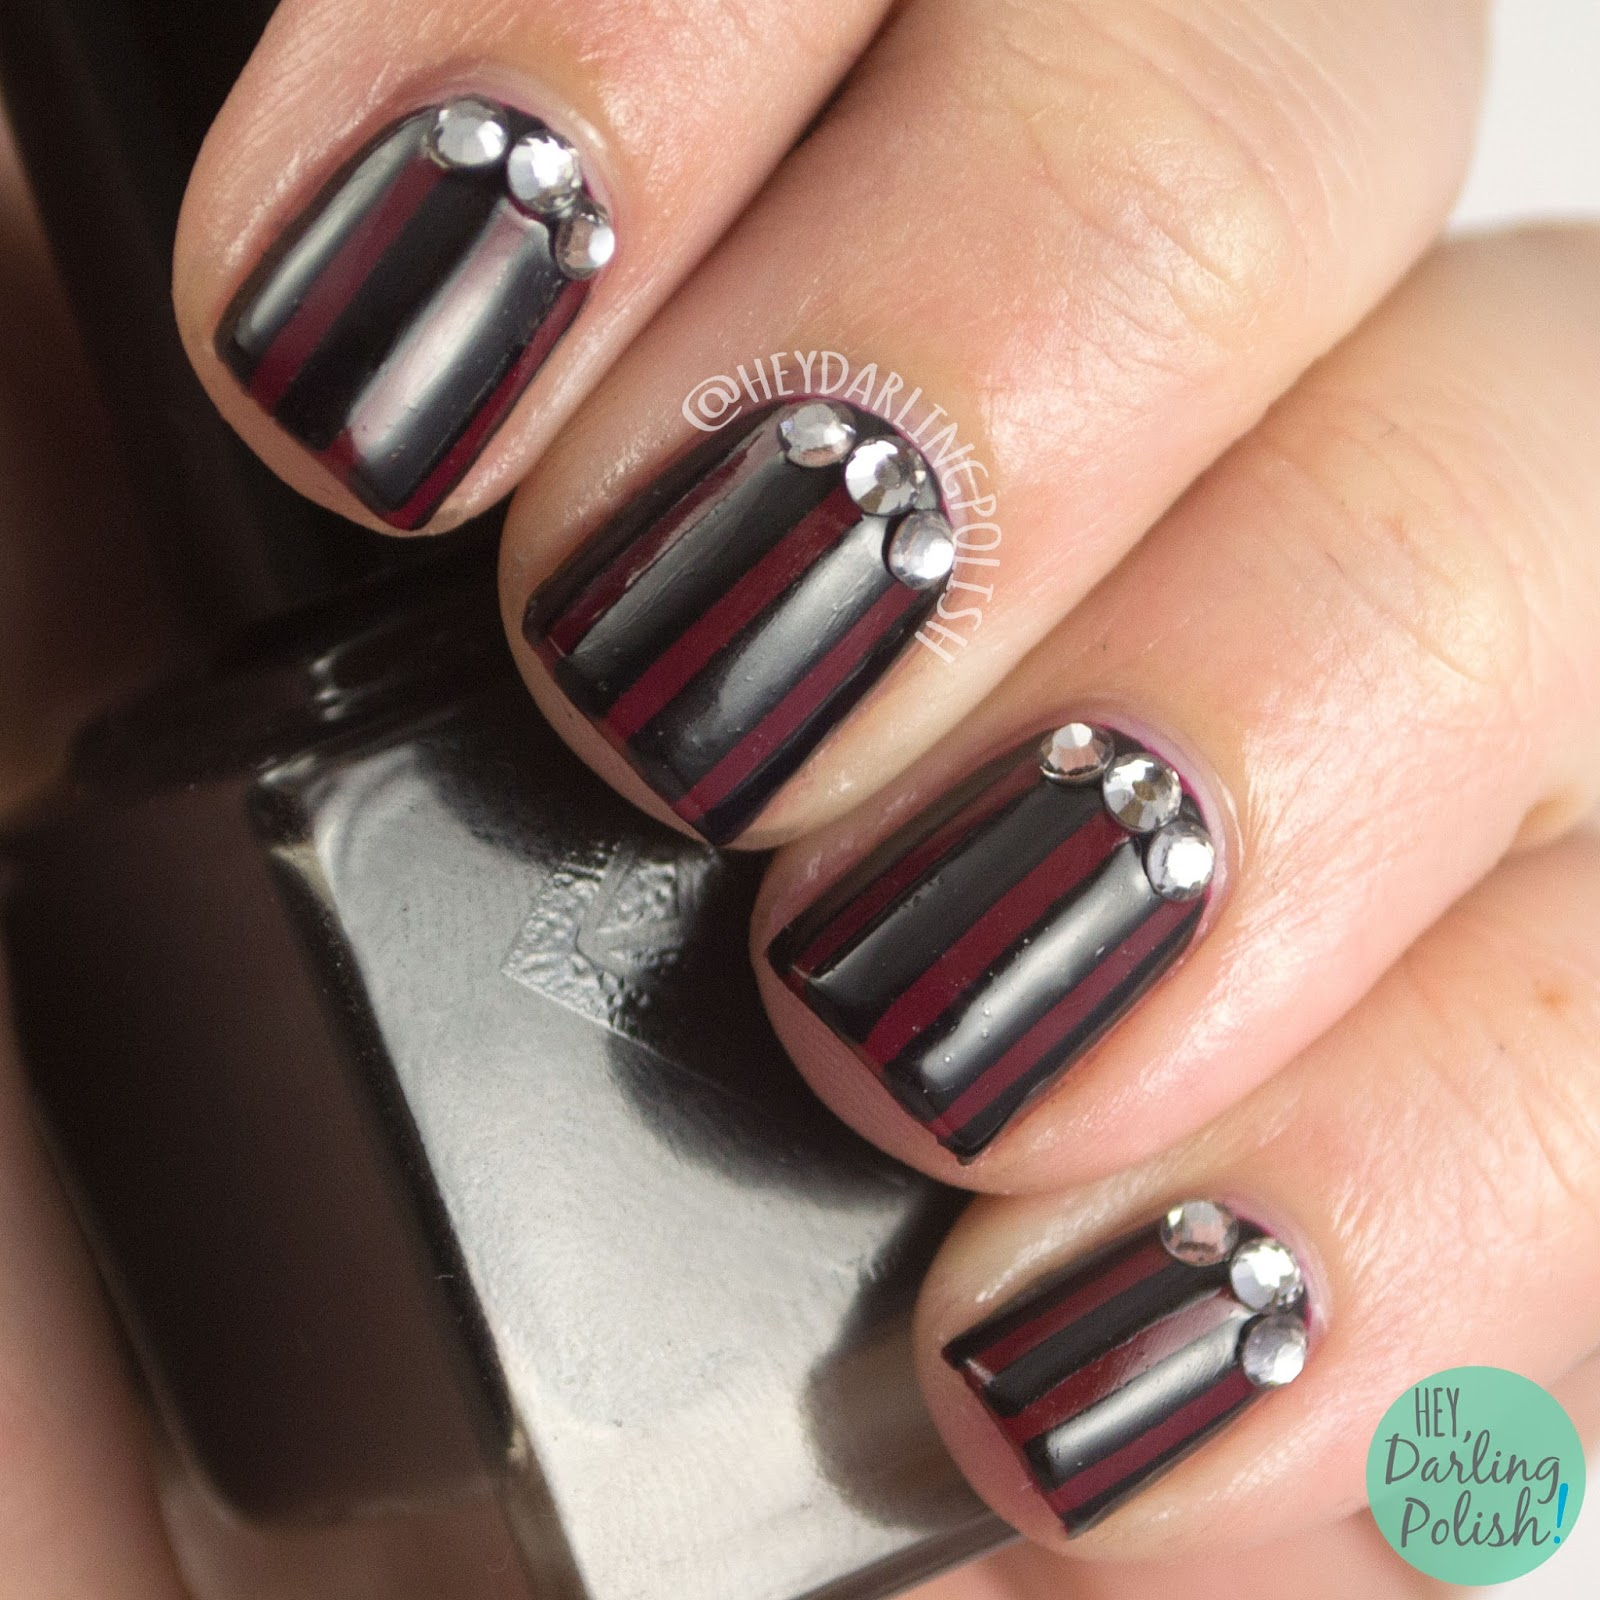 nails, nail art, nail polish, luxe lacquers, hey darling polish, red, black, stripes, rhinestones,